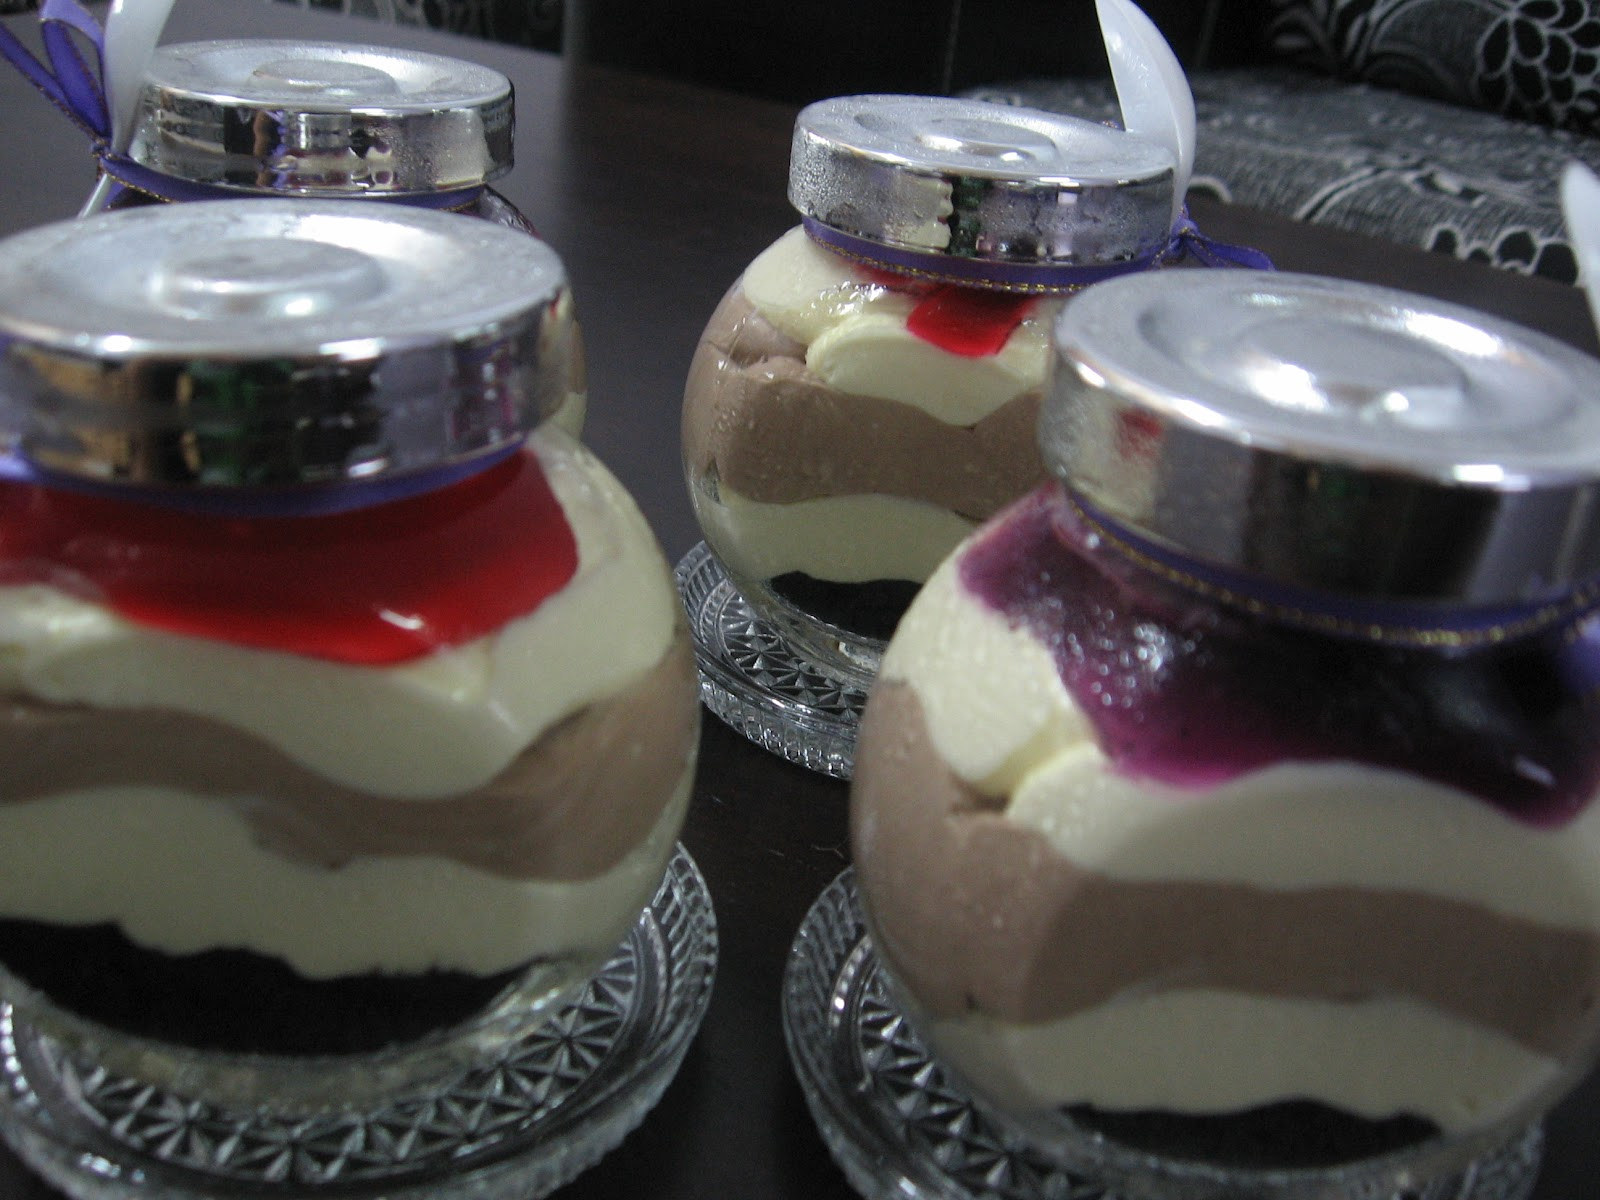 Resep Cake Jar Oreo: Main Masak-masak: Oreo Cheese Cake In Jar